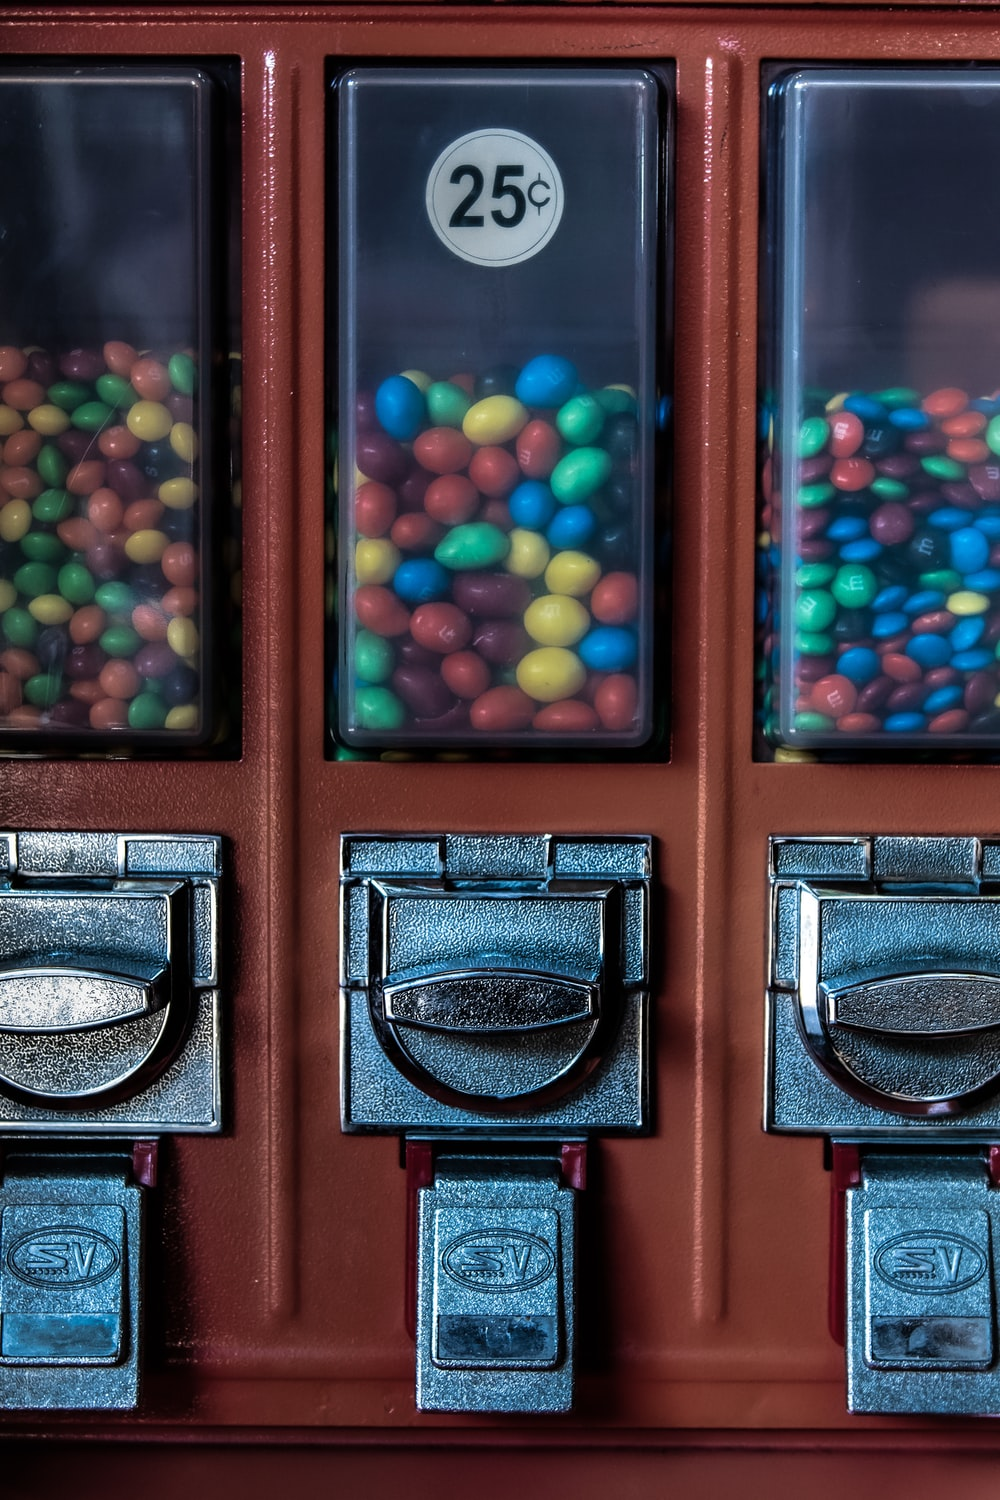 blue, yellow, and red candies on dispenser